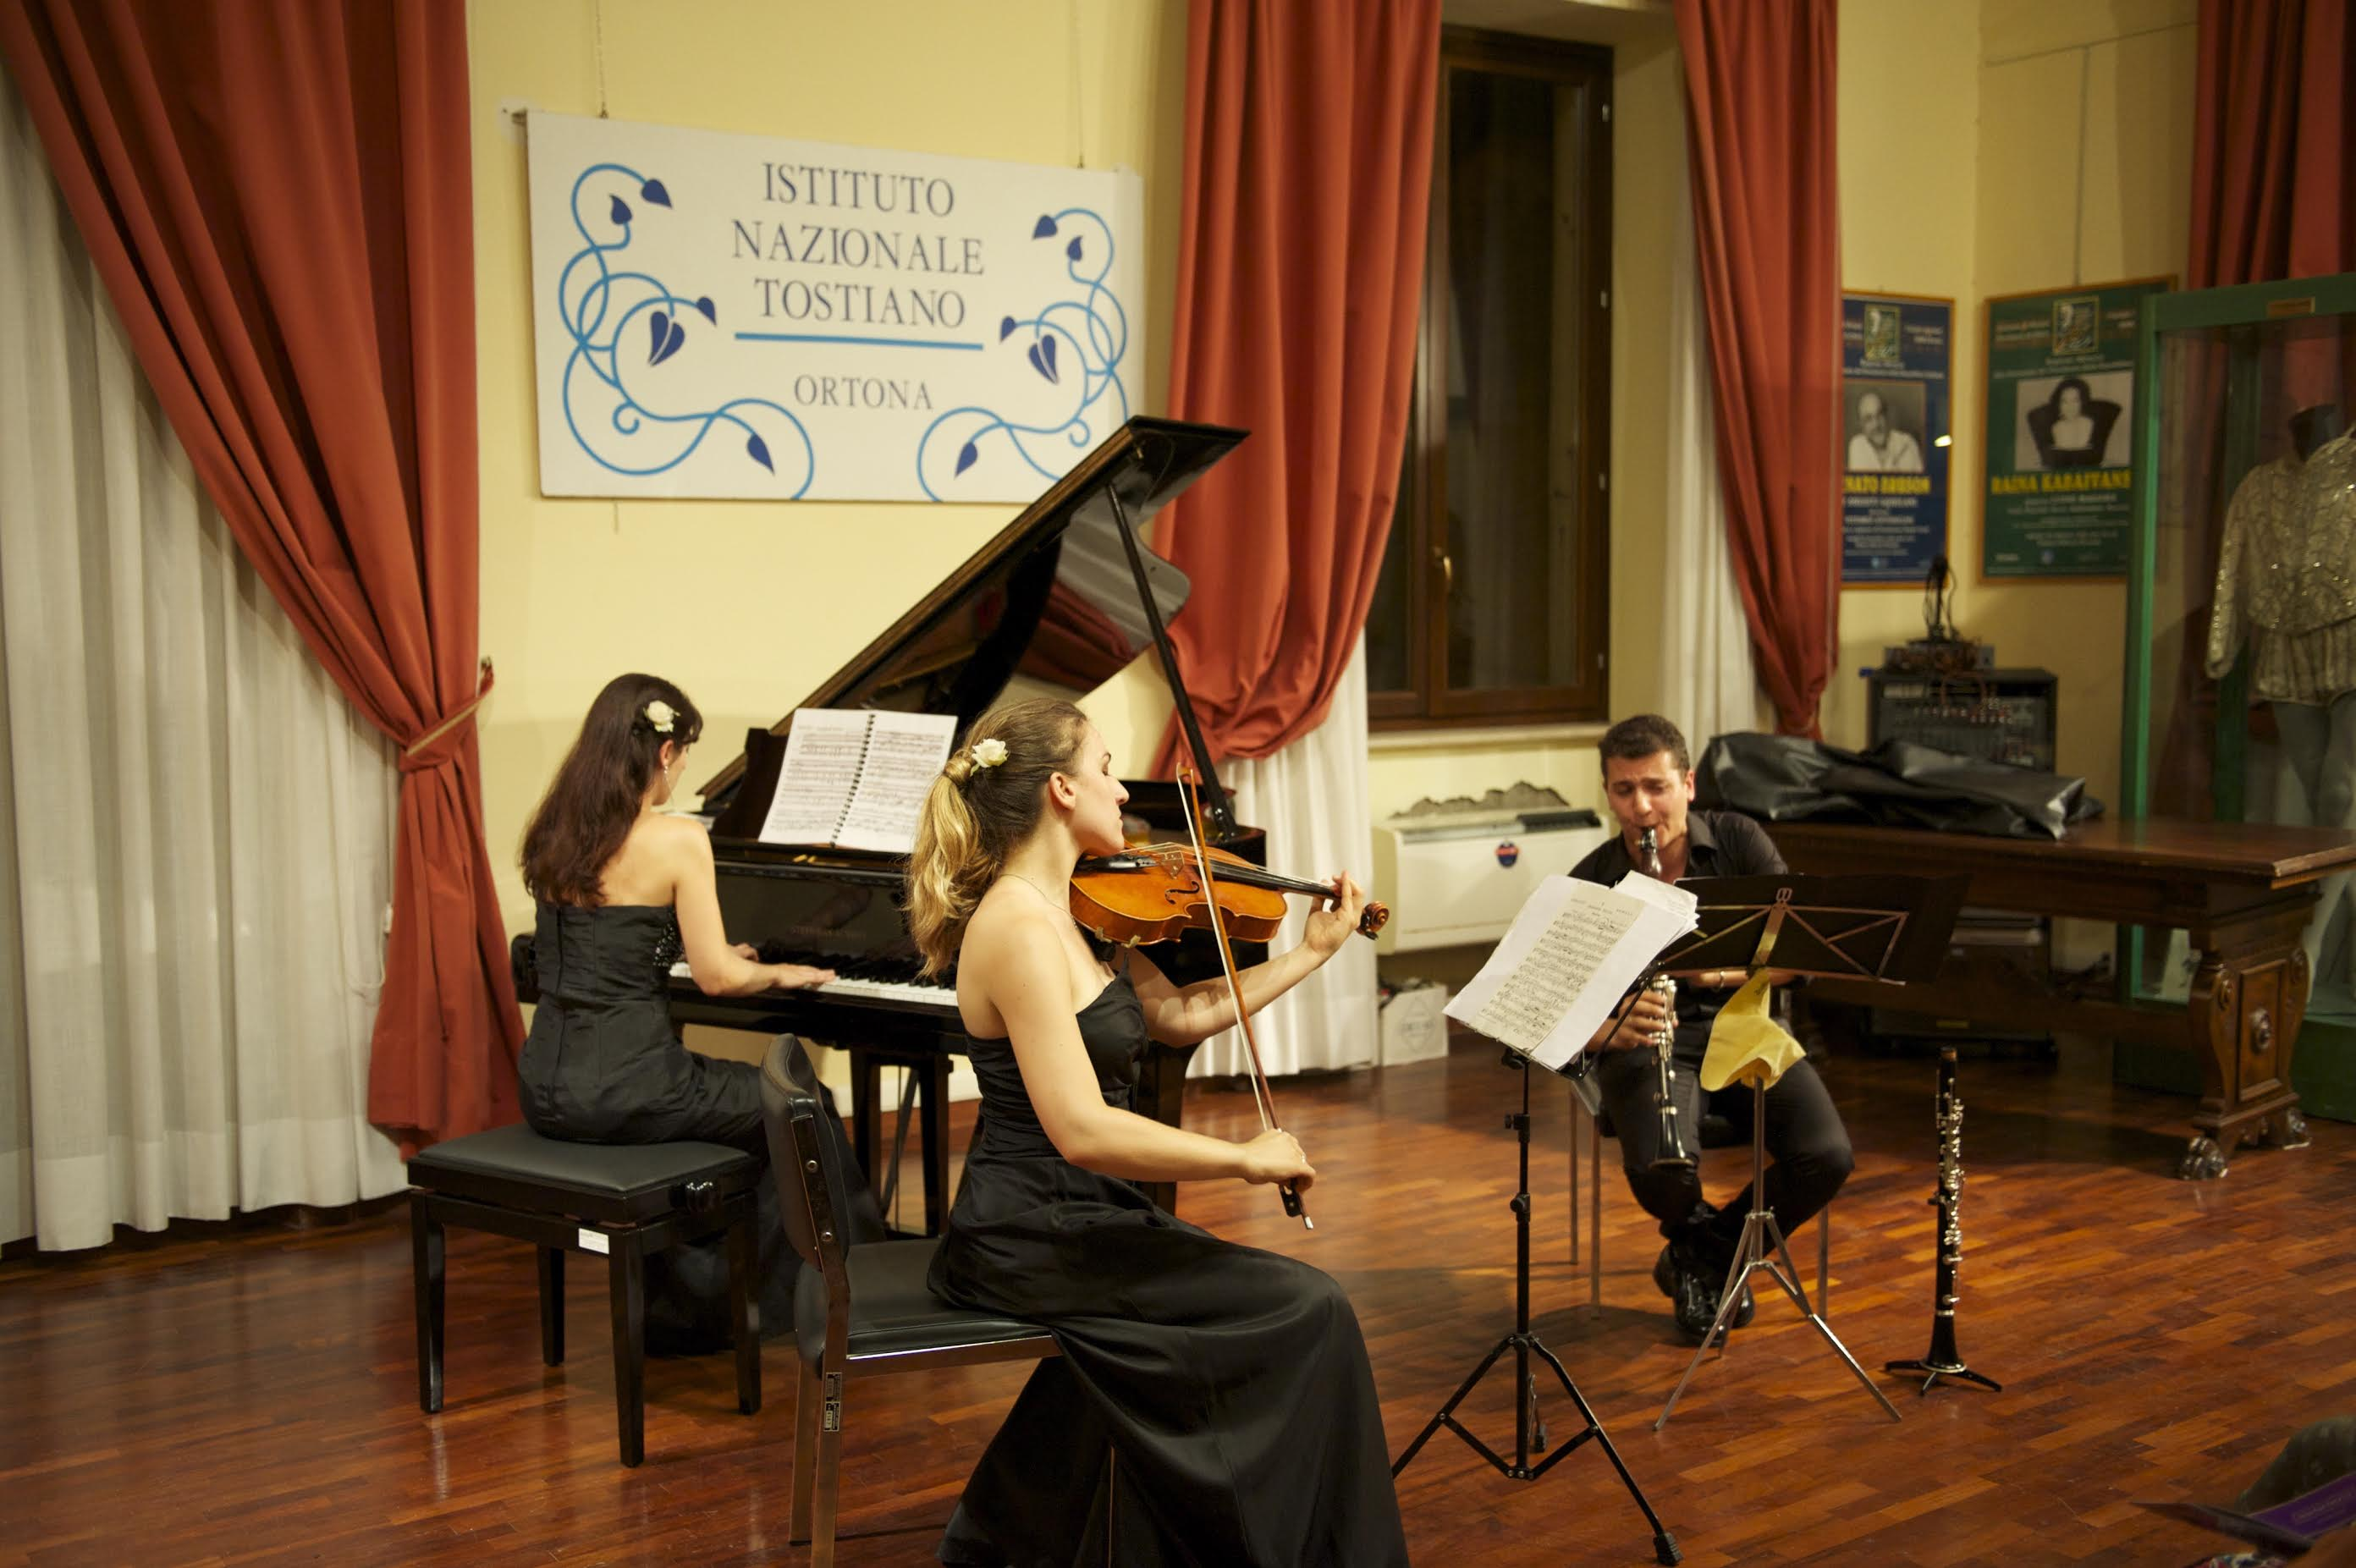 Chamber Music Concert - Istituto Nazionale Tostiano